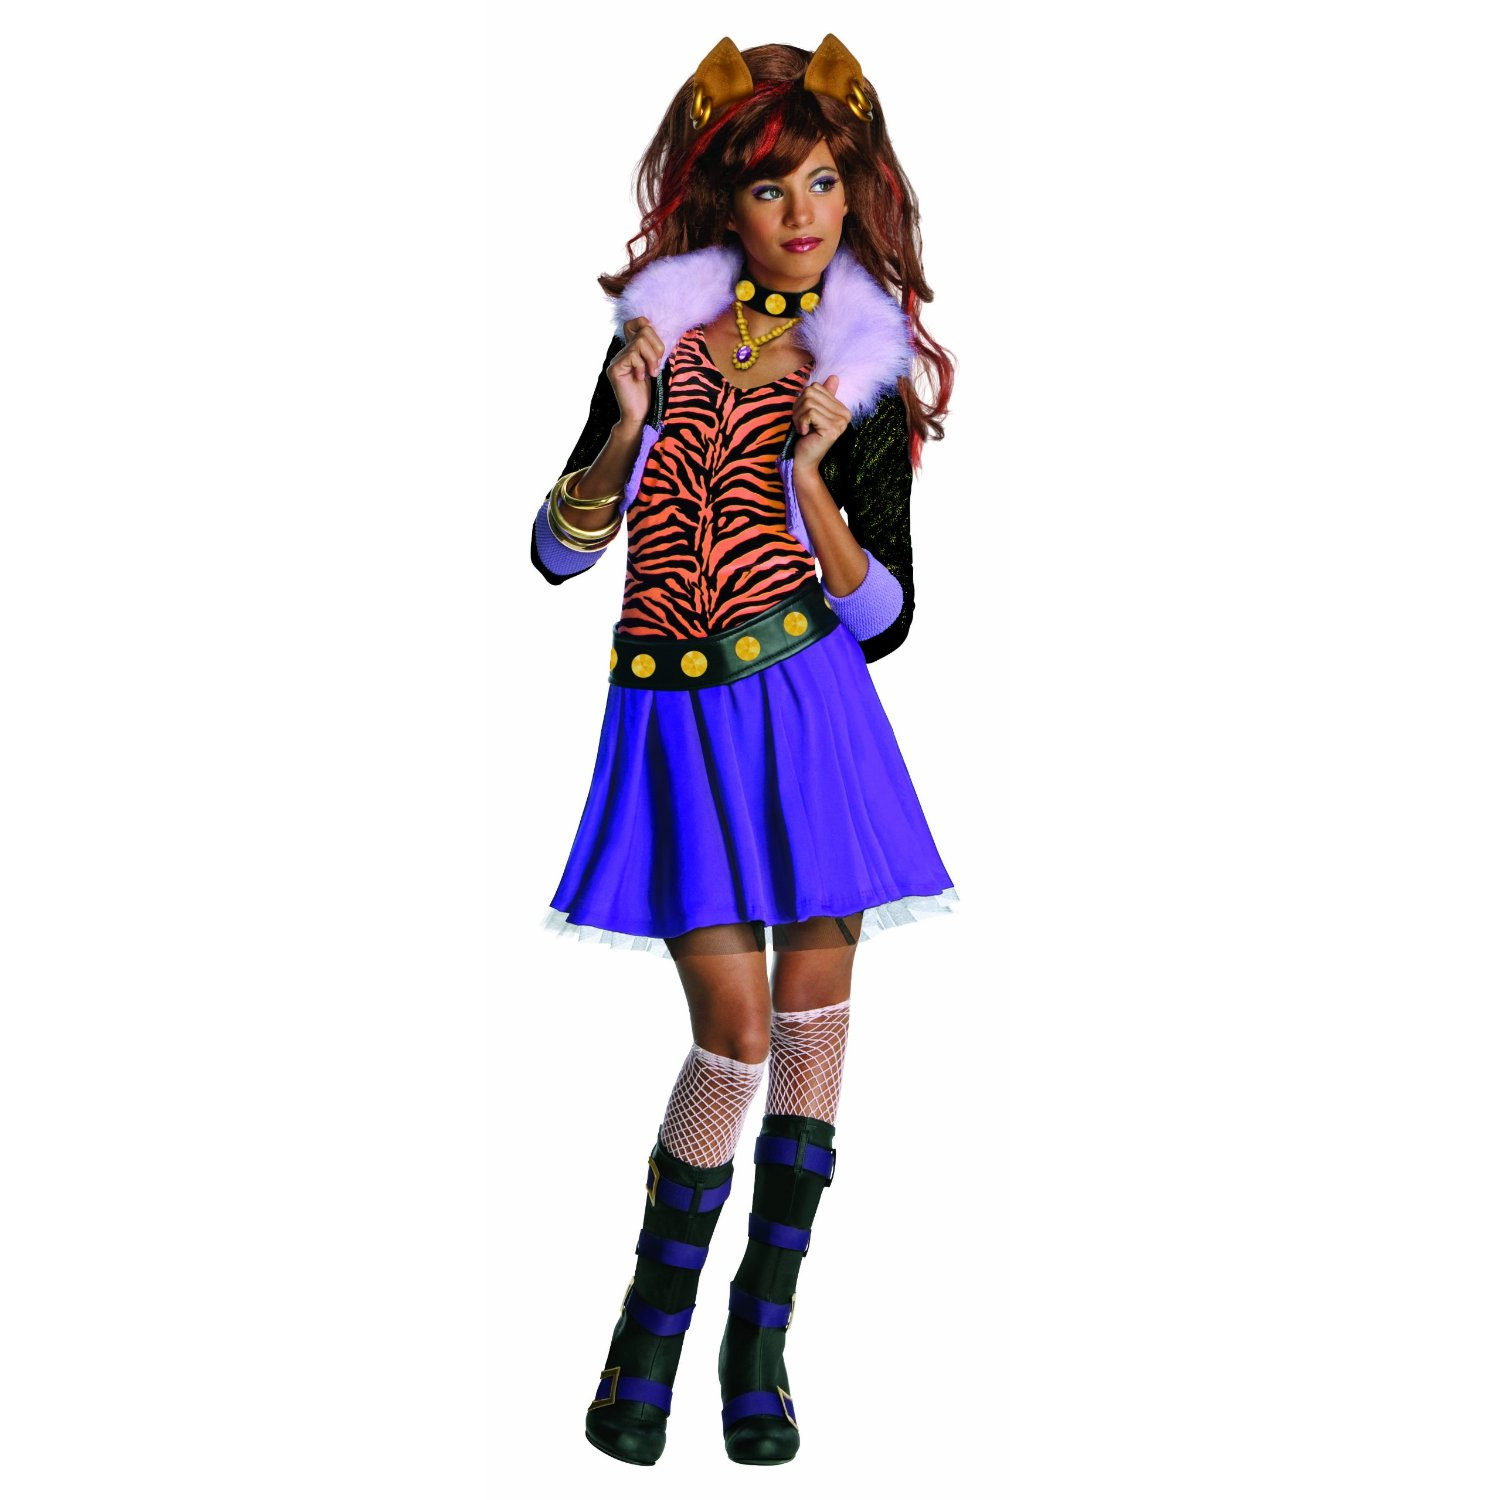 Monster High Clawdeen Wolf costume 884788